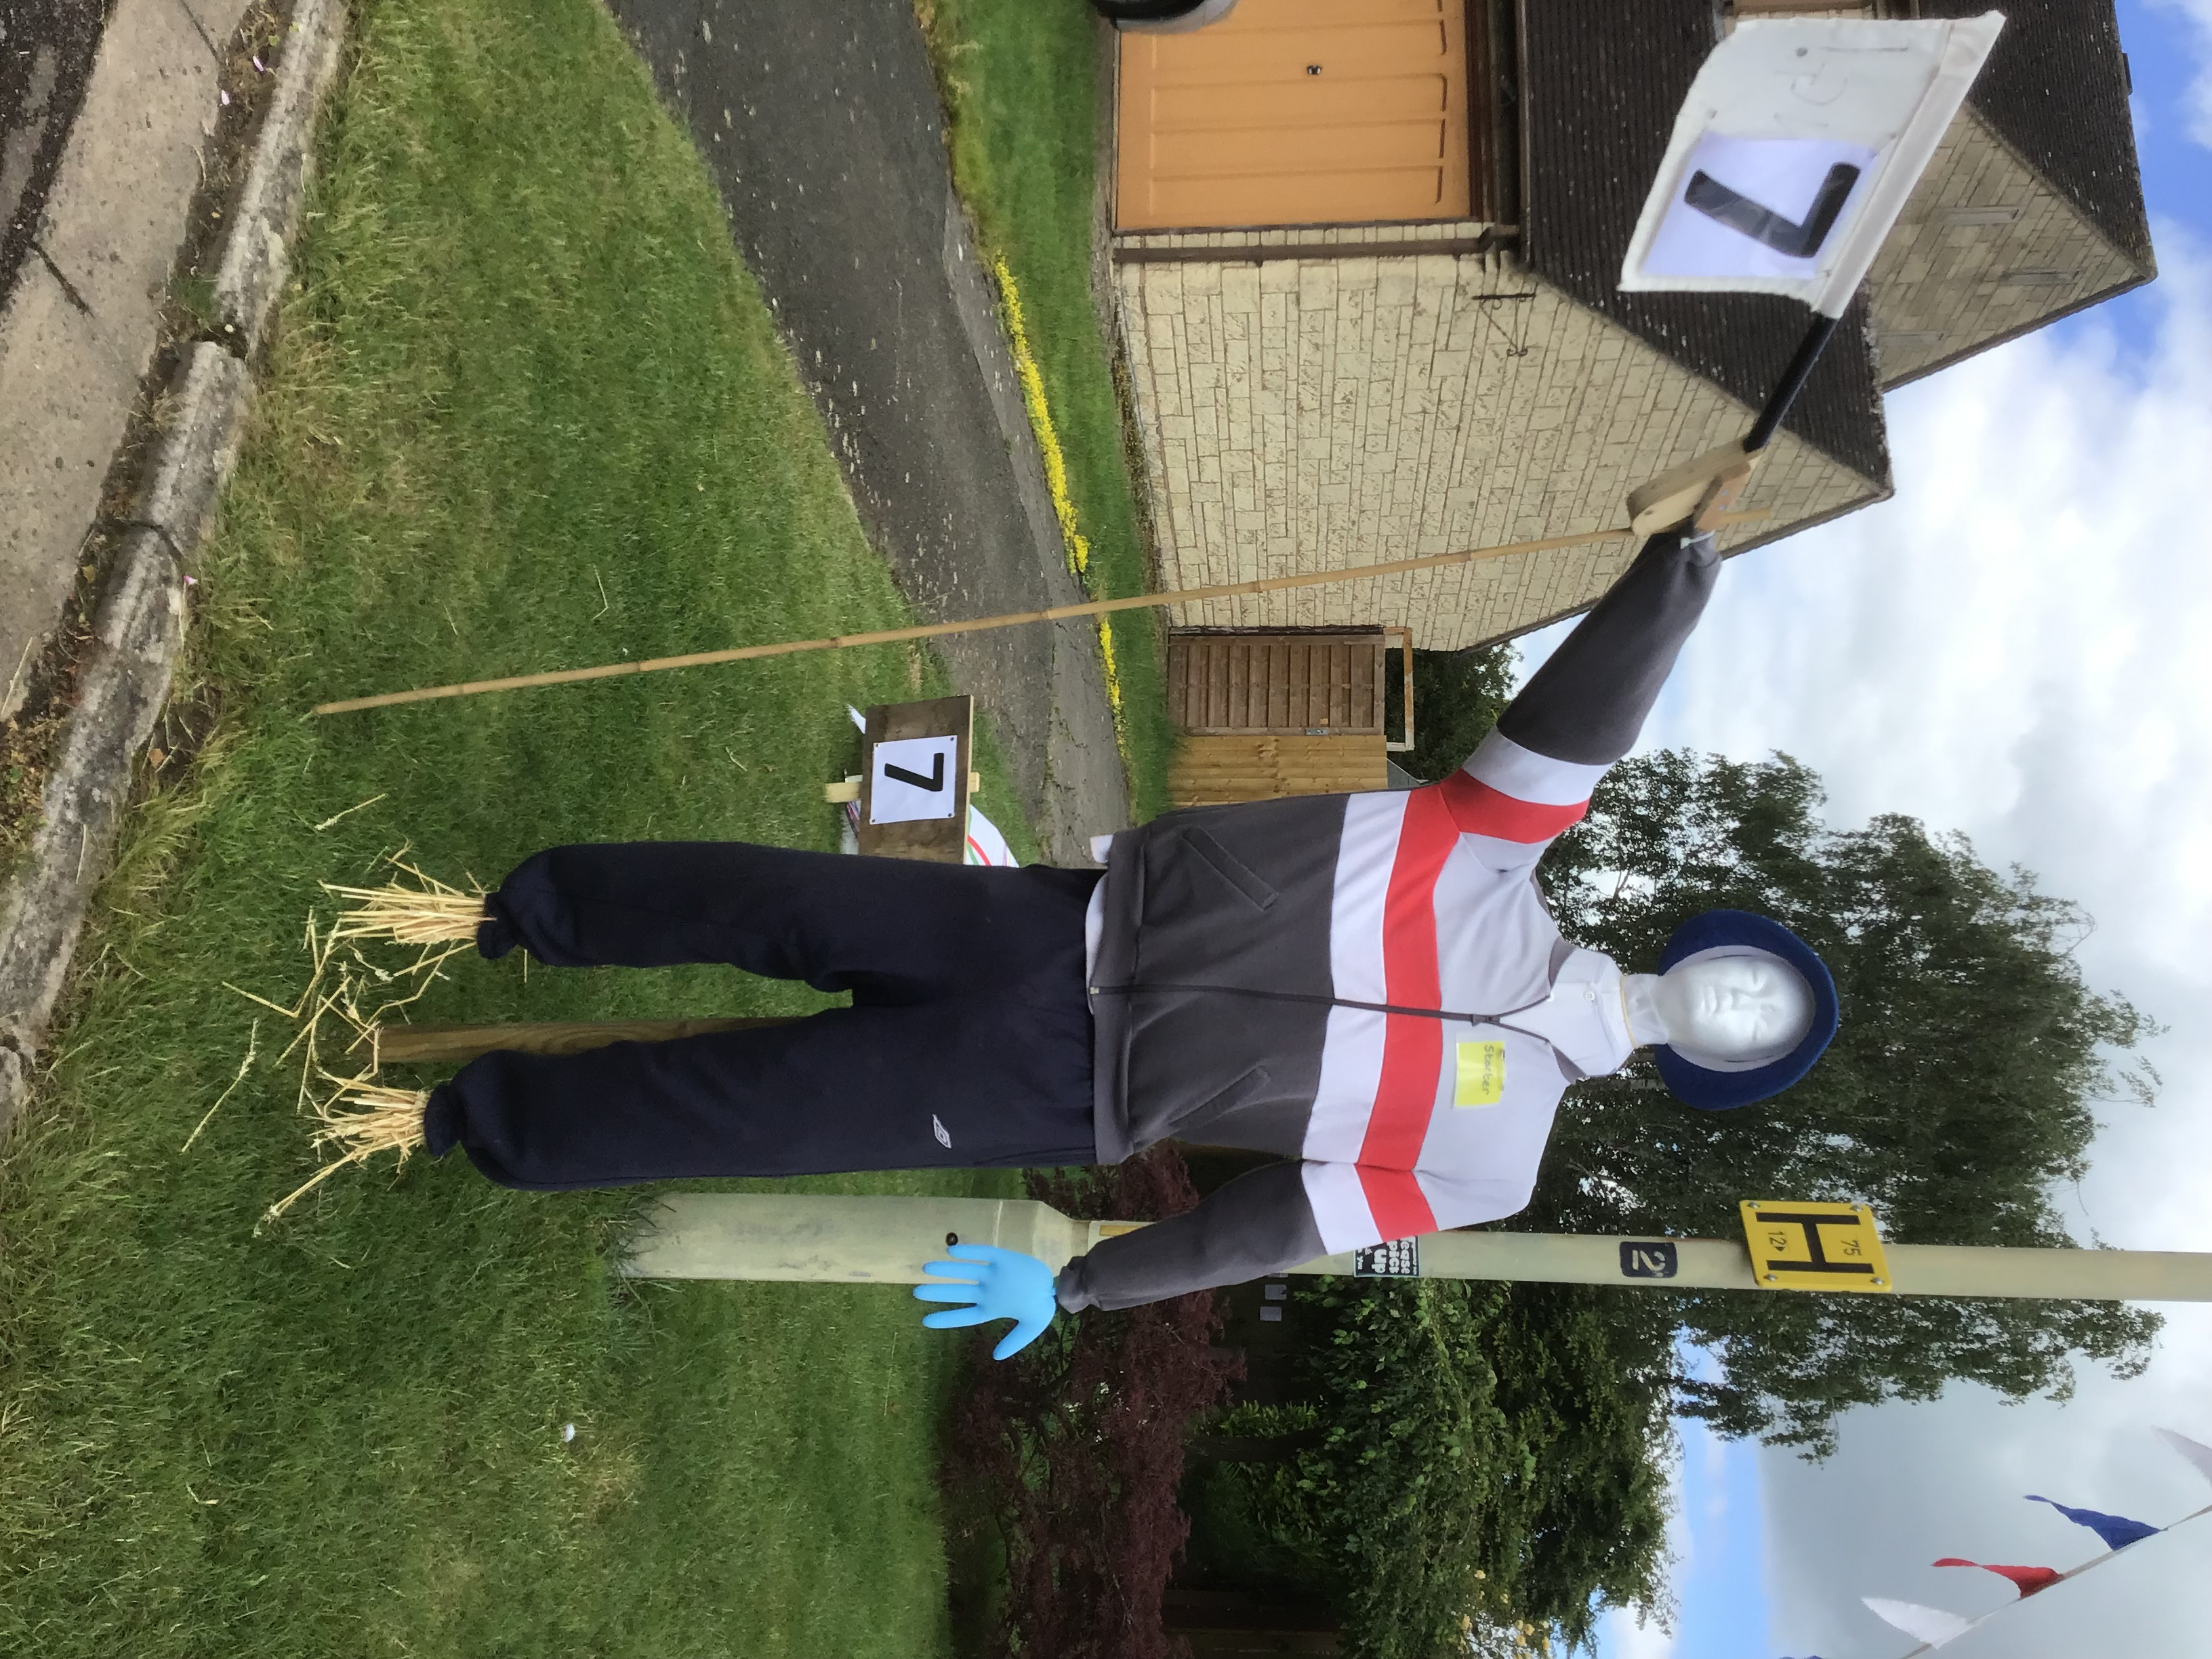 Willersey Scarecrow 37 2021